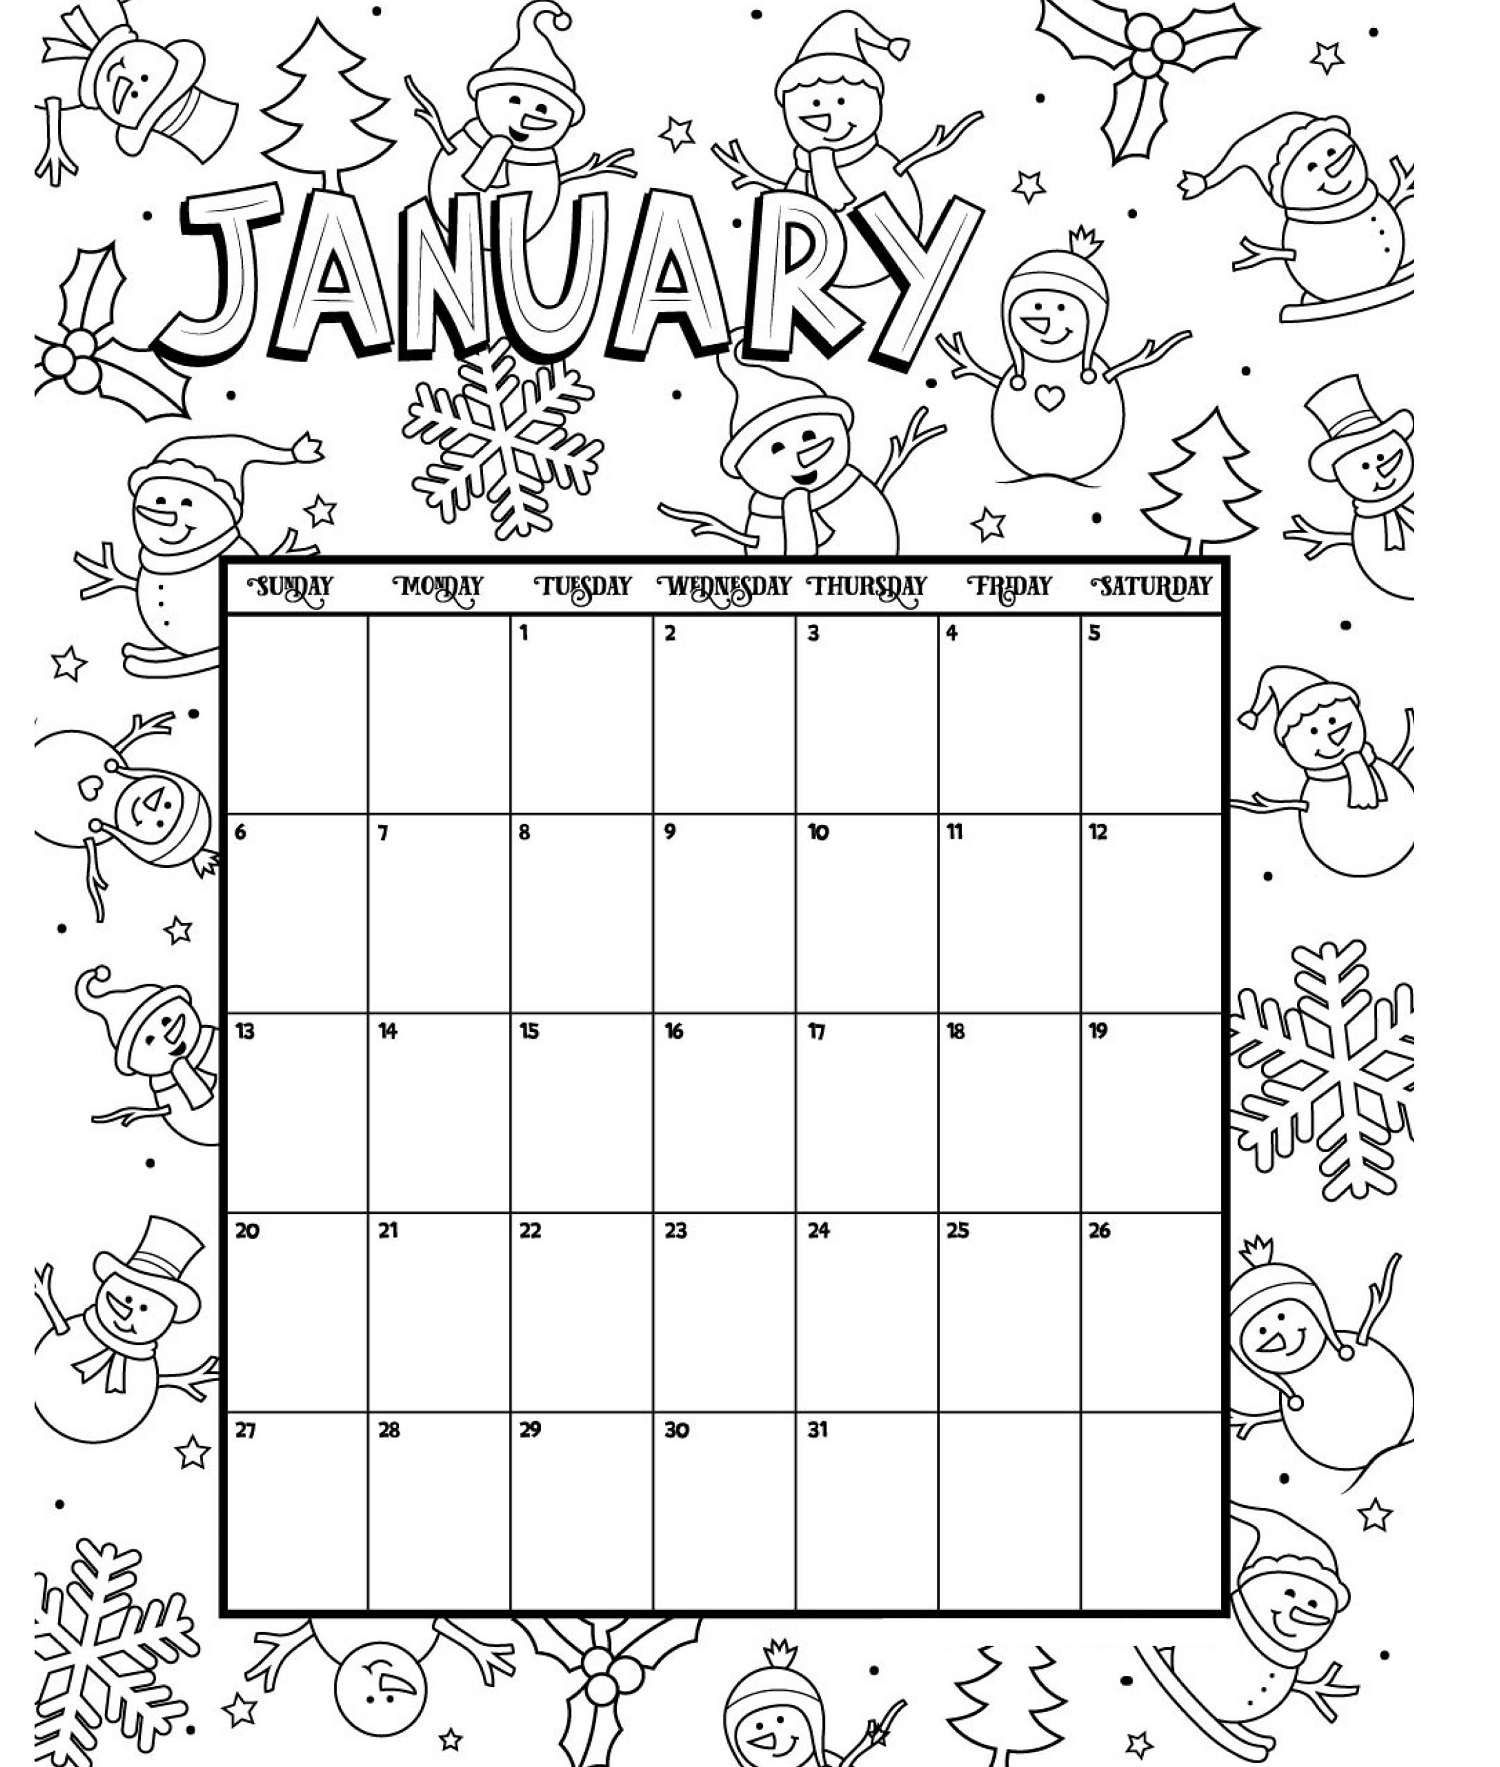 January Printable Coloring Calendar 2019 Coloring Calendar Kids